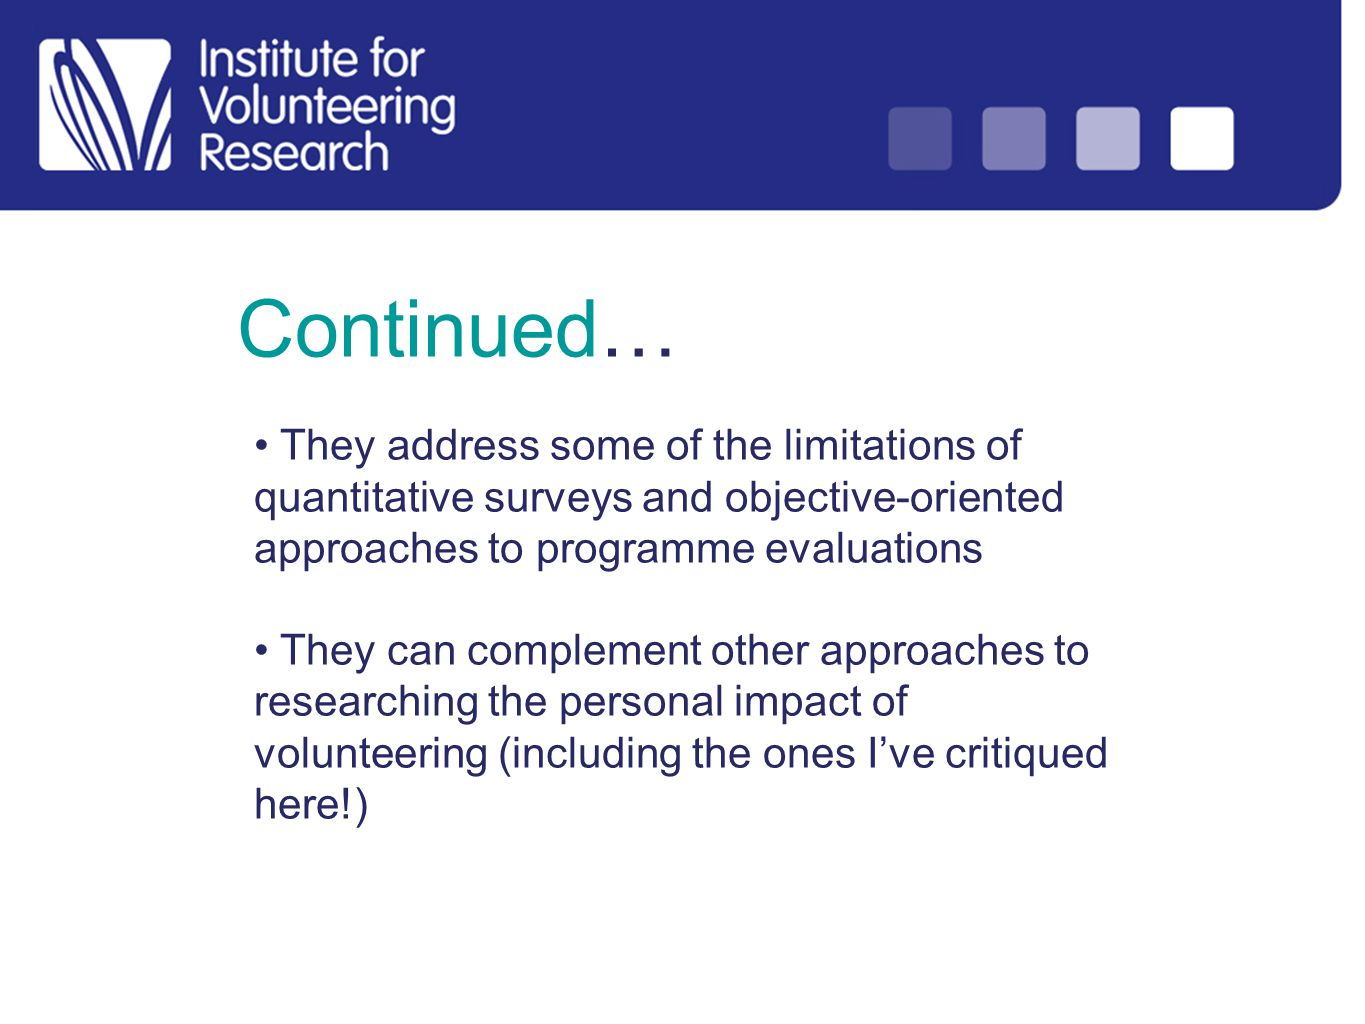 Continued… They address some of the limitations of quantitative surveys and objective-oriented approaches to programme evaluations They can complement other approaches to researching the personal impact of volunteering (including the ones Ive critiqued here!)